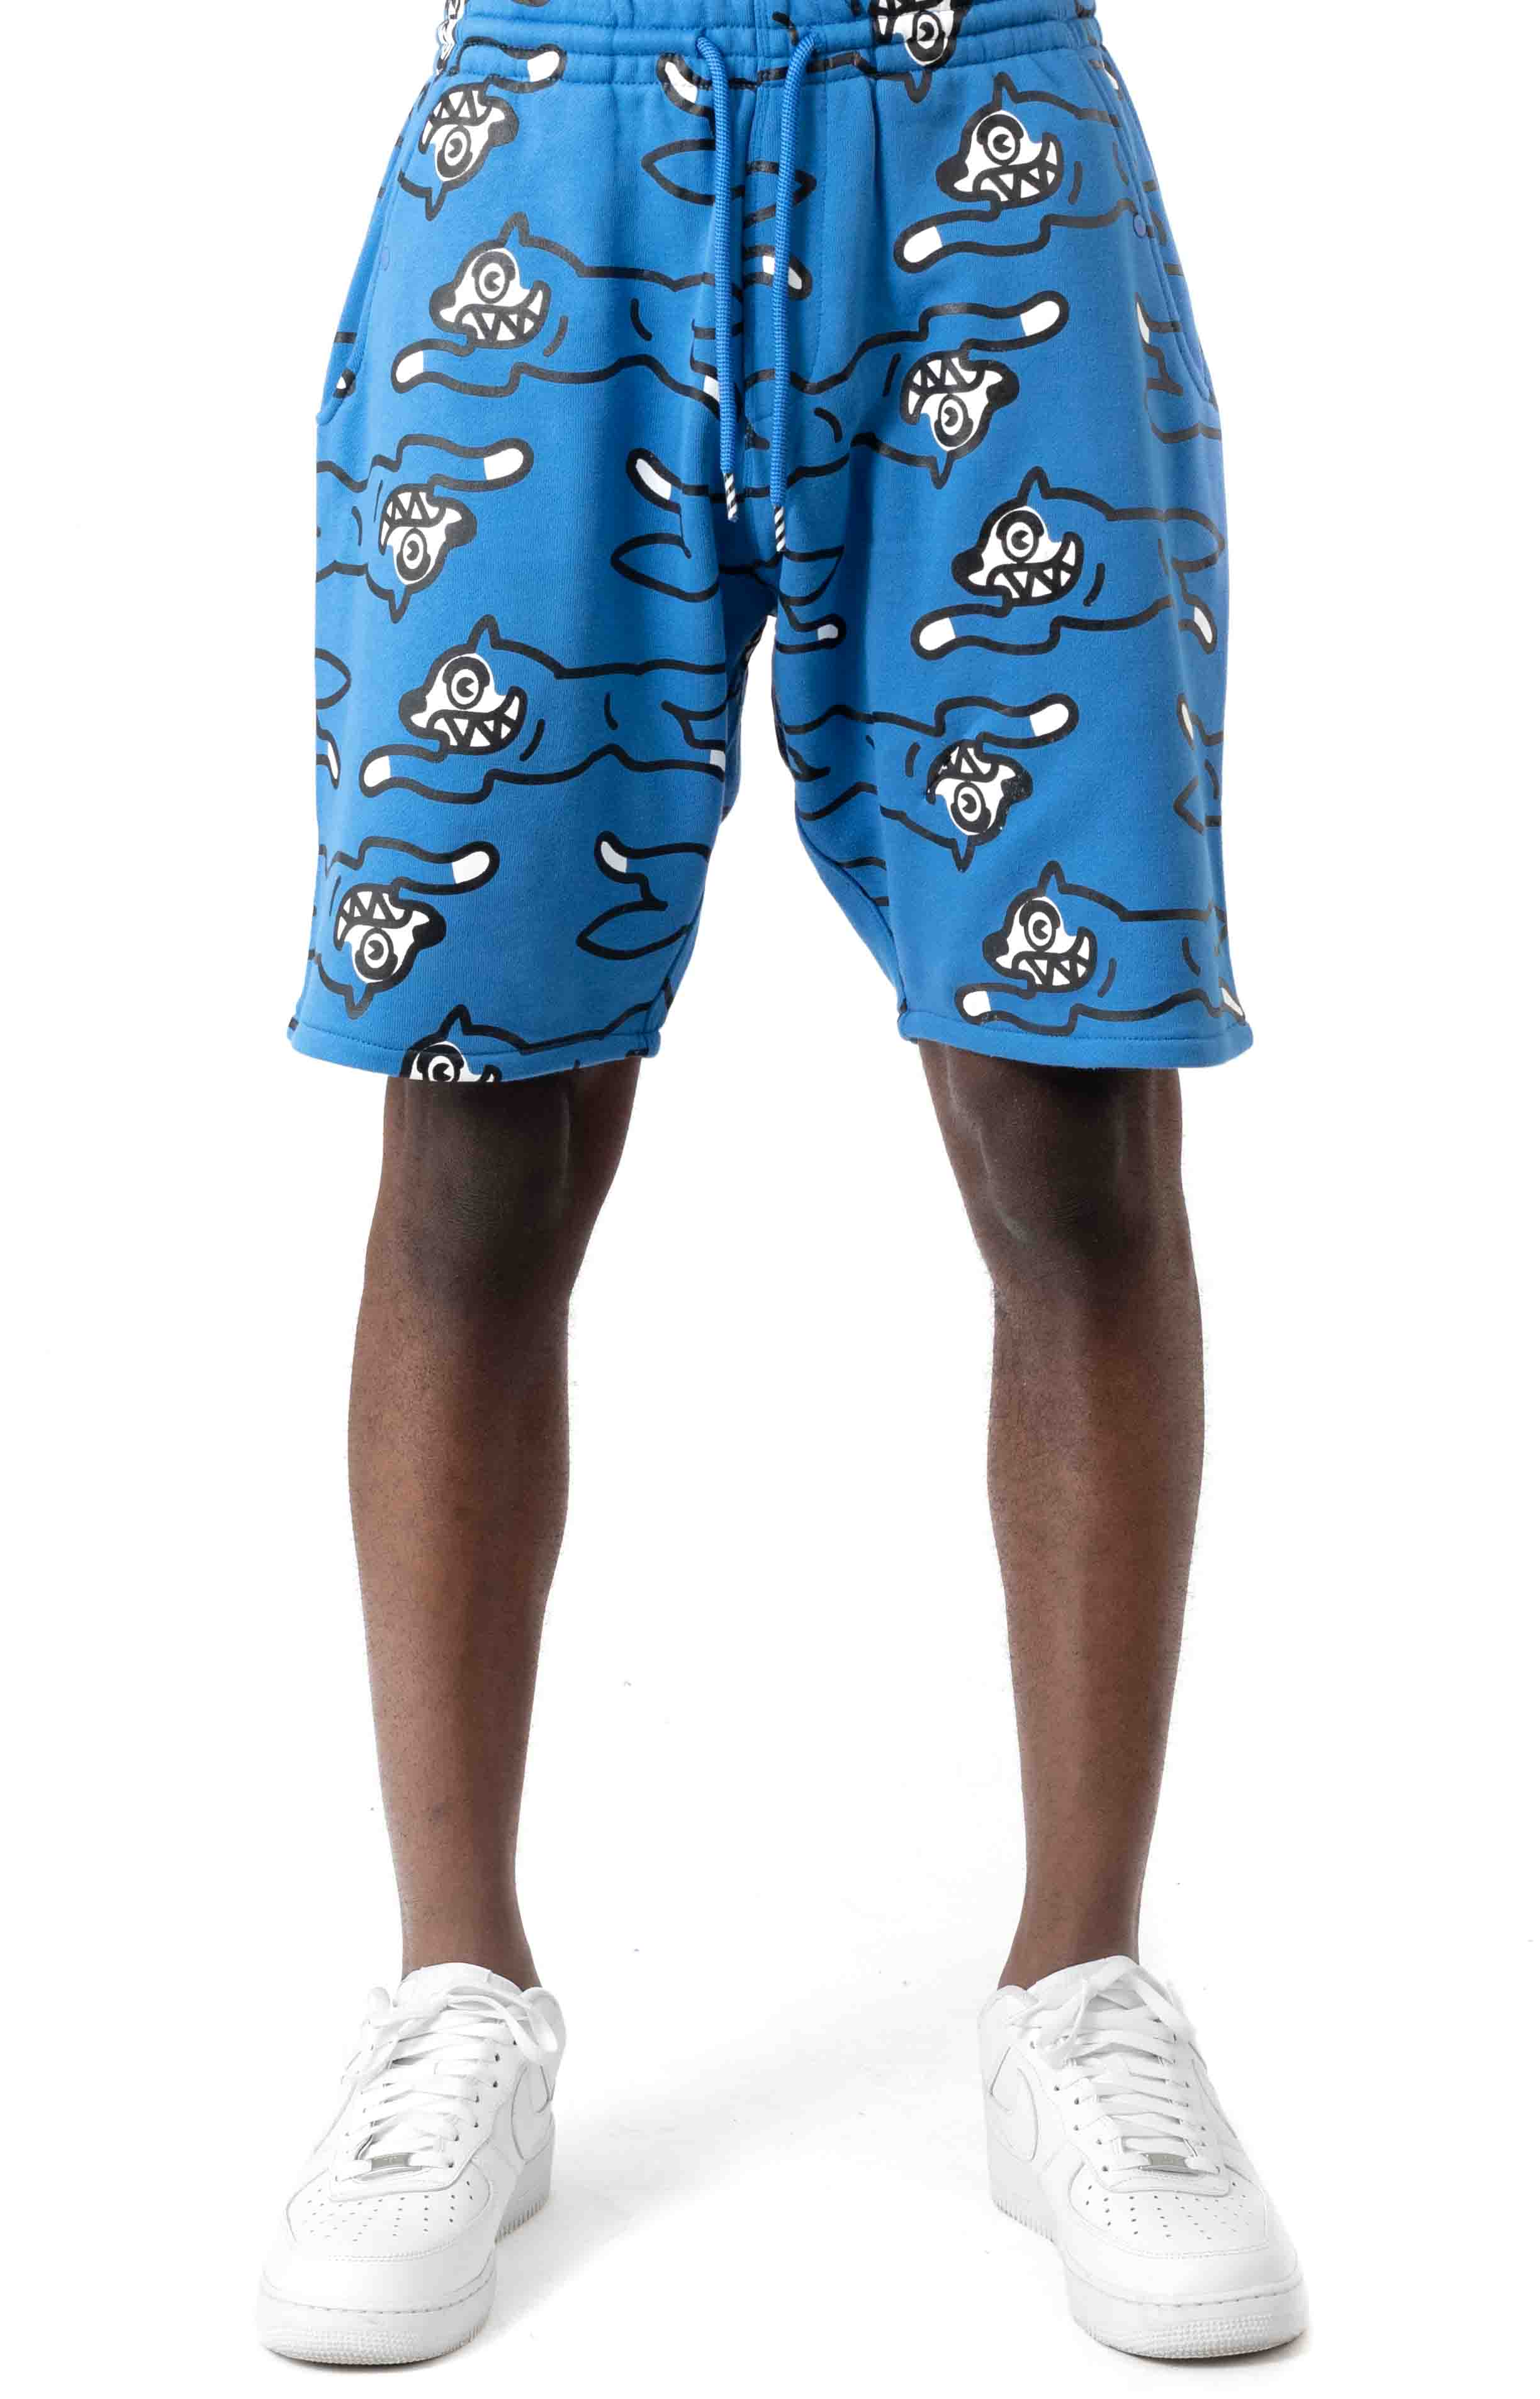 Bow Wow Short - Strong Blue  2